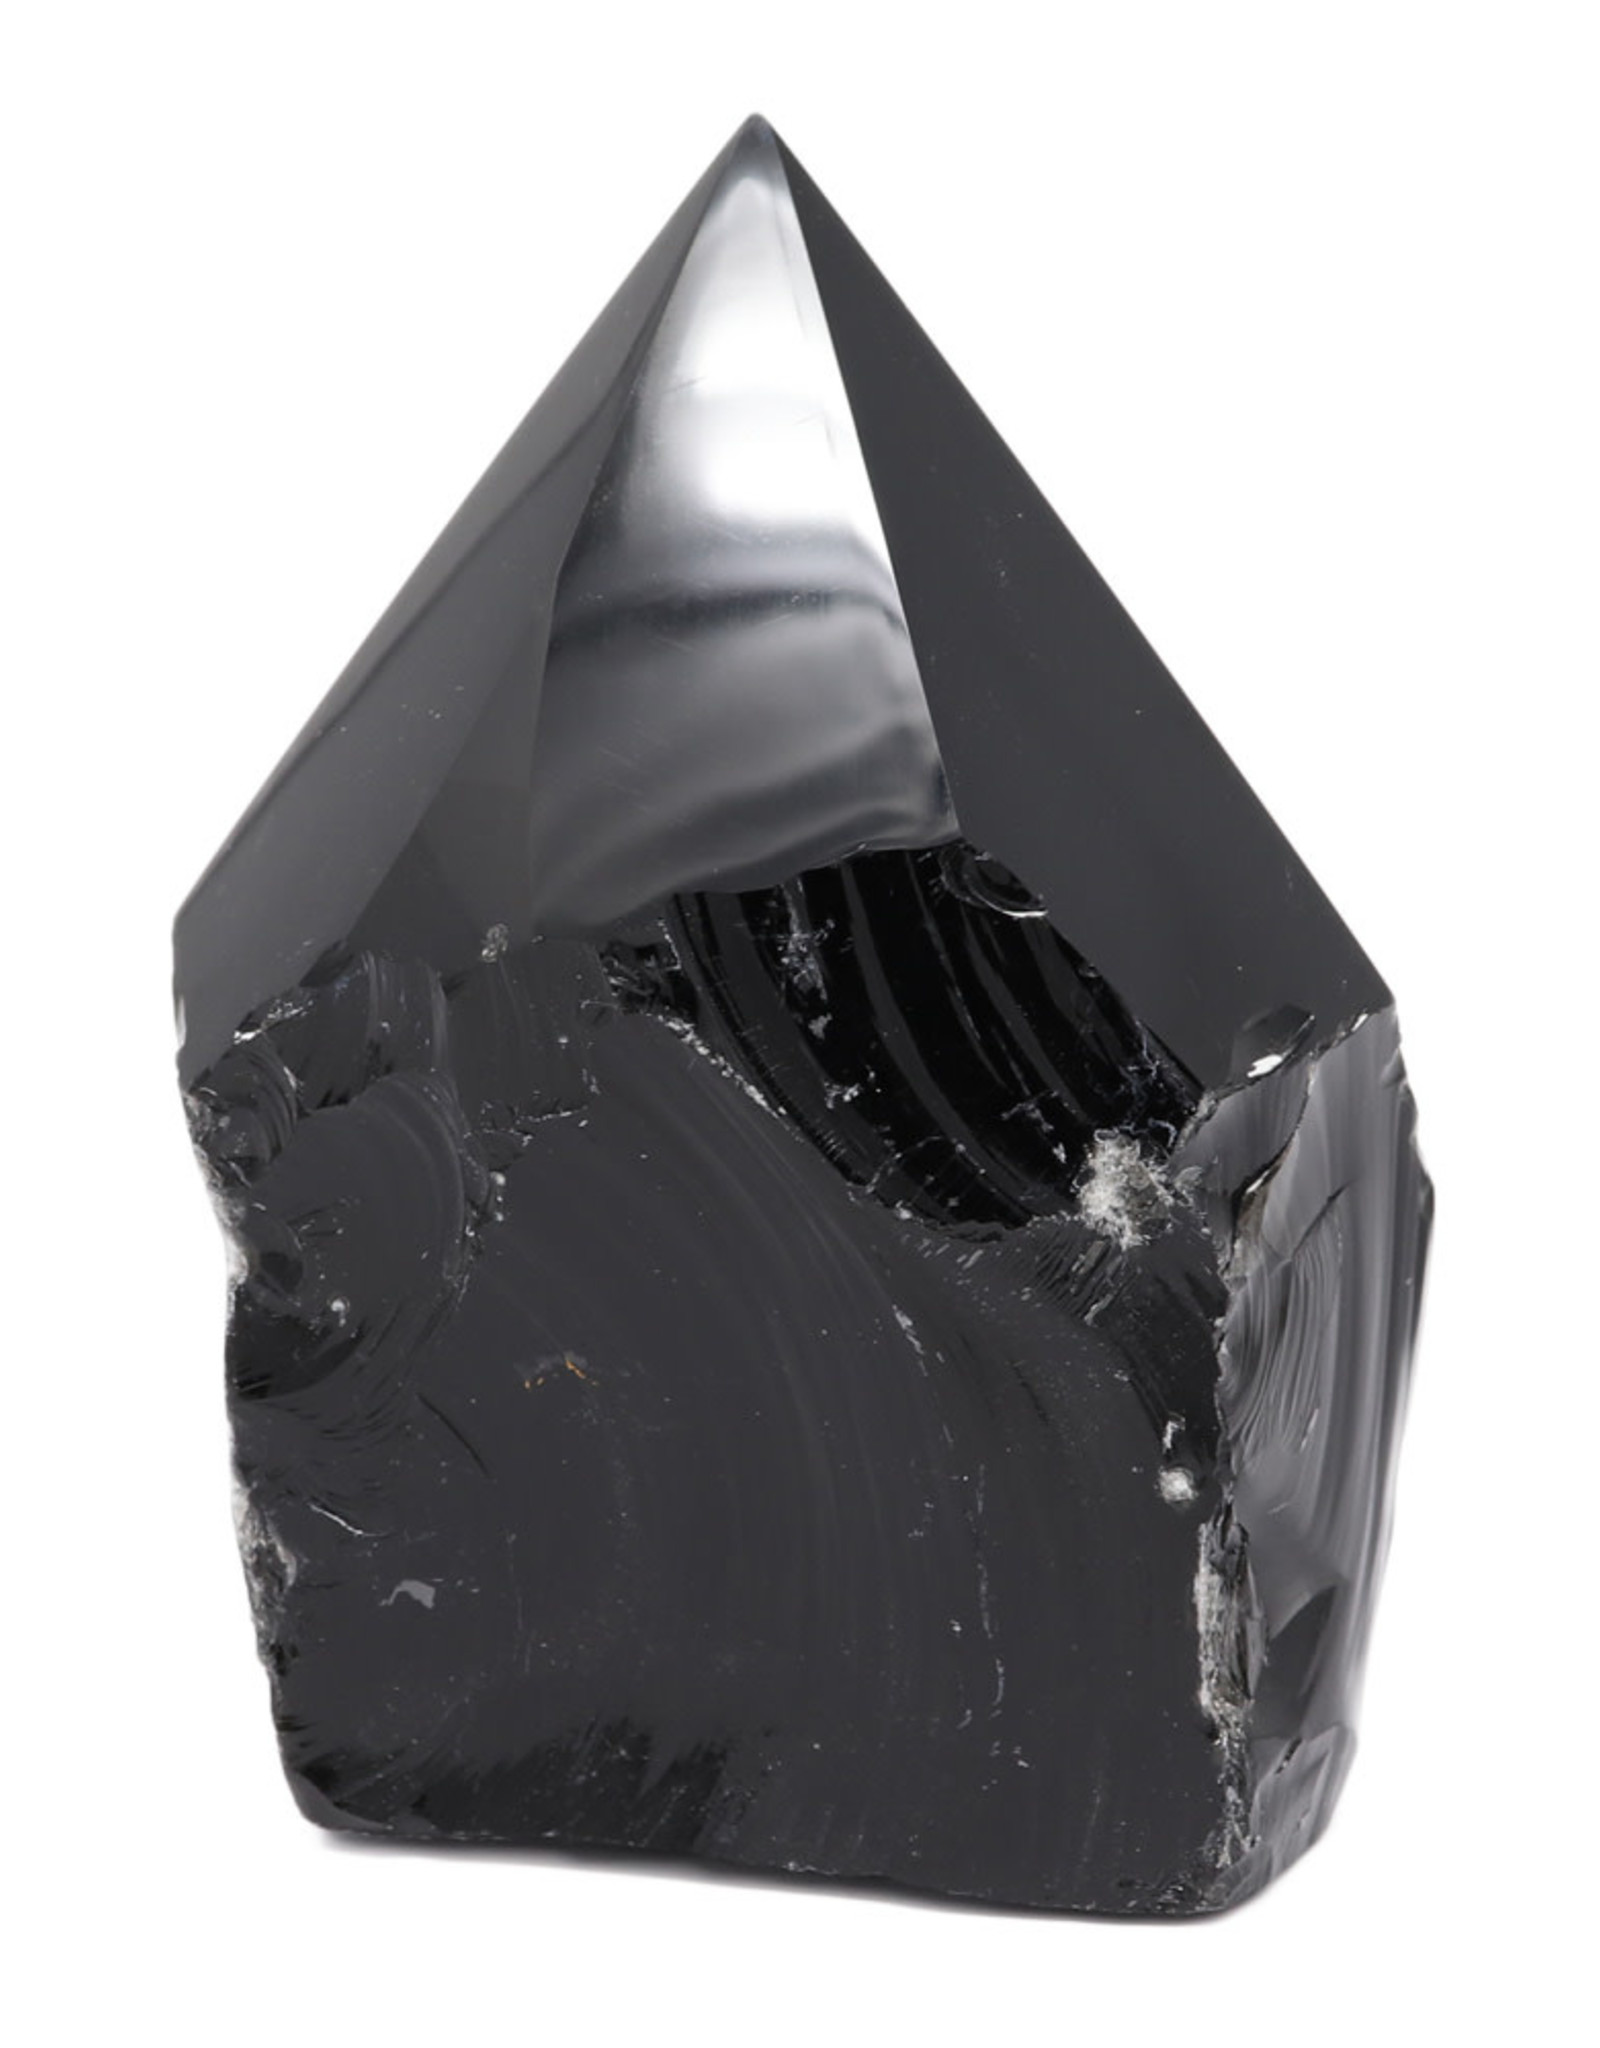 Black Obsidian Polished Point with Base